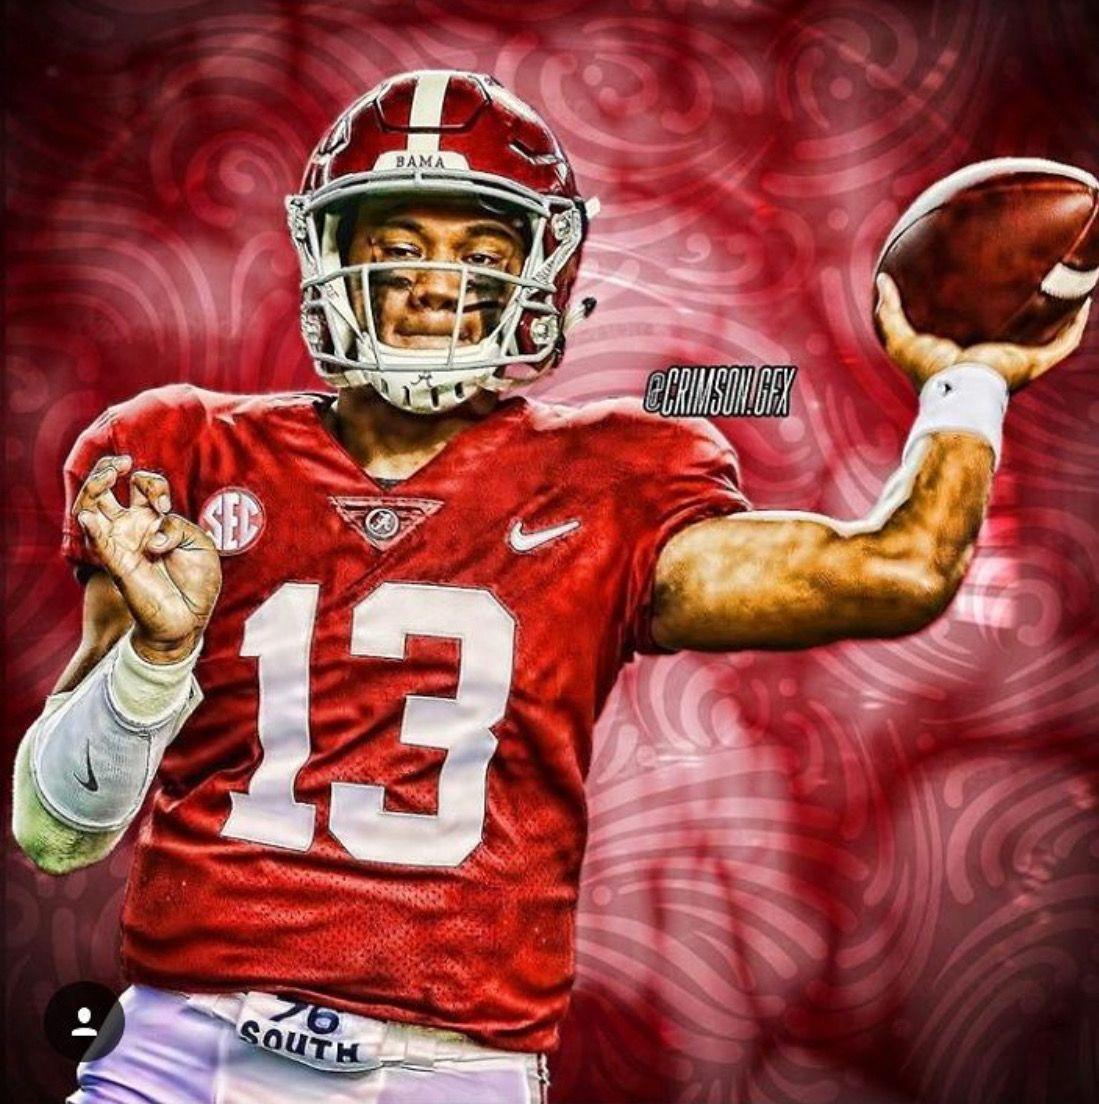 Tua Tagovailoa 13 Alabama Rolltide Bama Builtbybama Rtr Crimsontide Rammerja Alabama Crimson Tide Football Alabama Crimson Tide Alabama Football Team